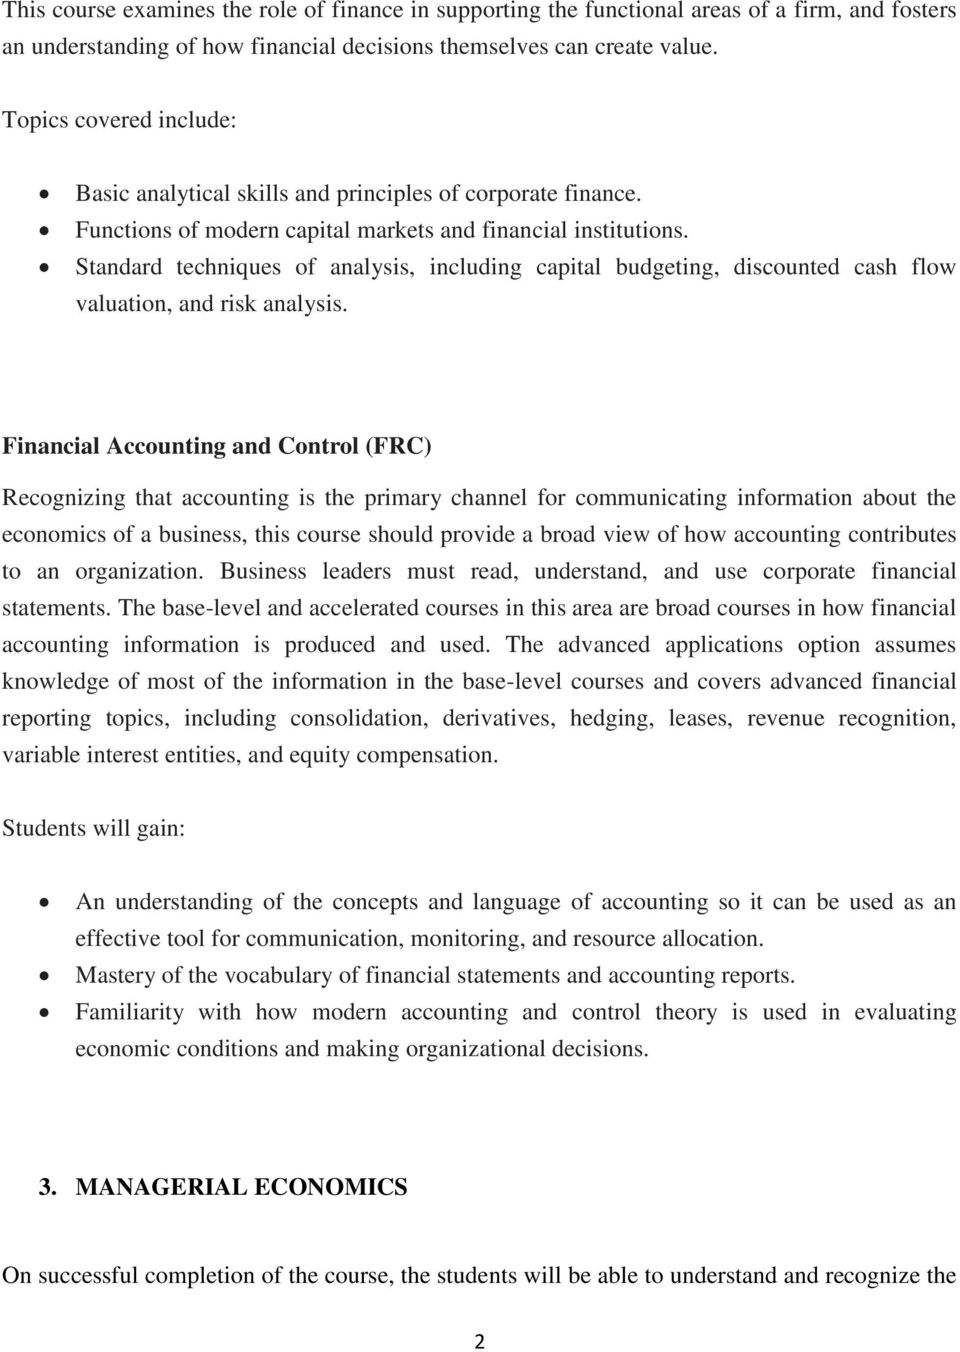 Standard techniques of analysis, including capital budgeting, discounted cash flow valuation, and risk analysis.